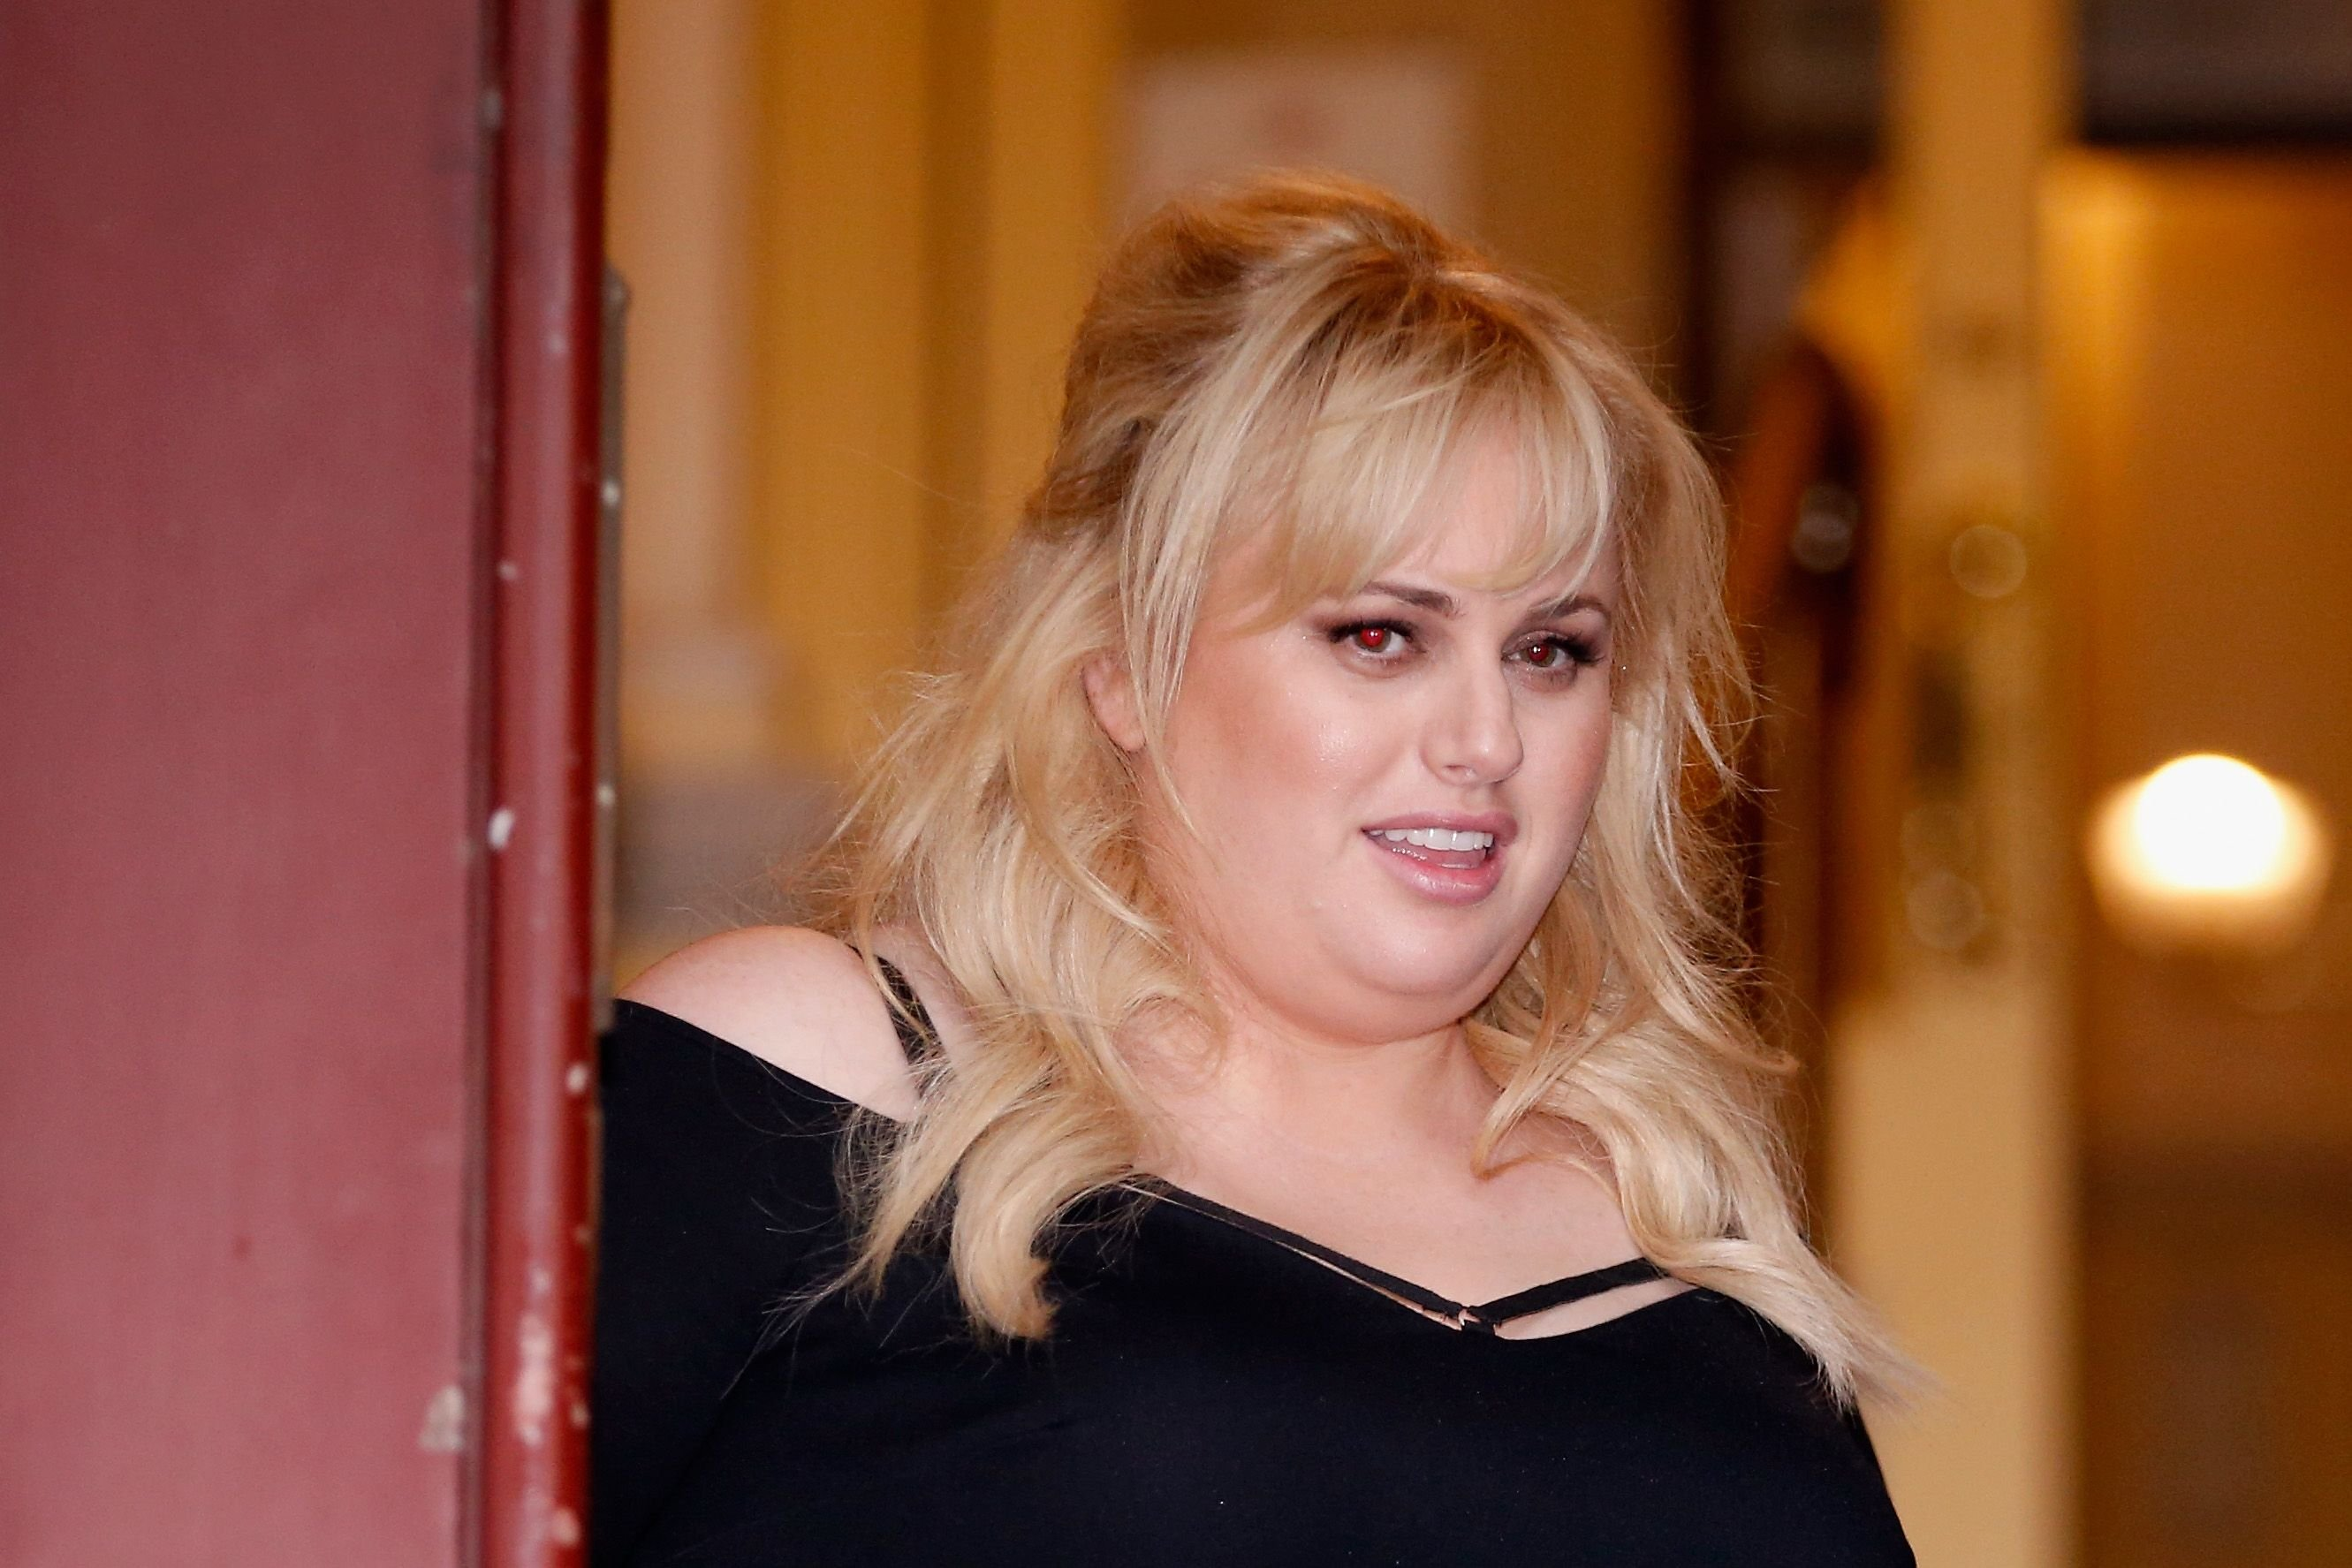 Rebel Wilson outside the Court of Appeal on April 19, 2018 in Melbourne, Australia. | Source: Getty Images